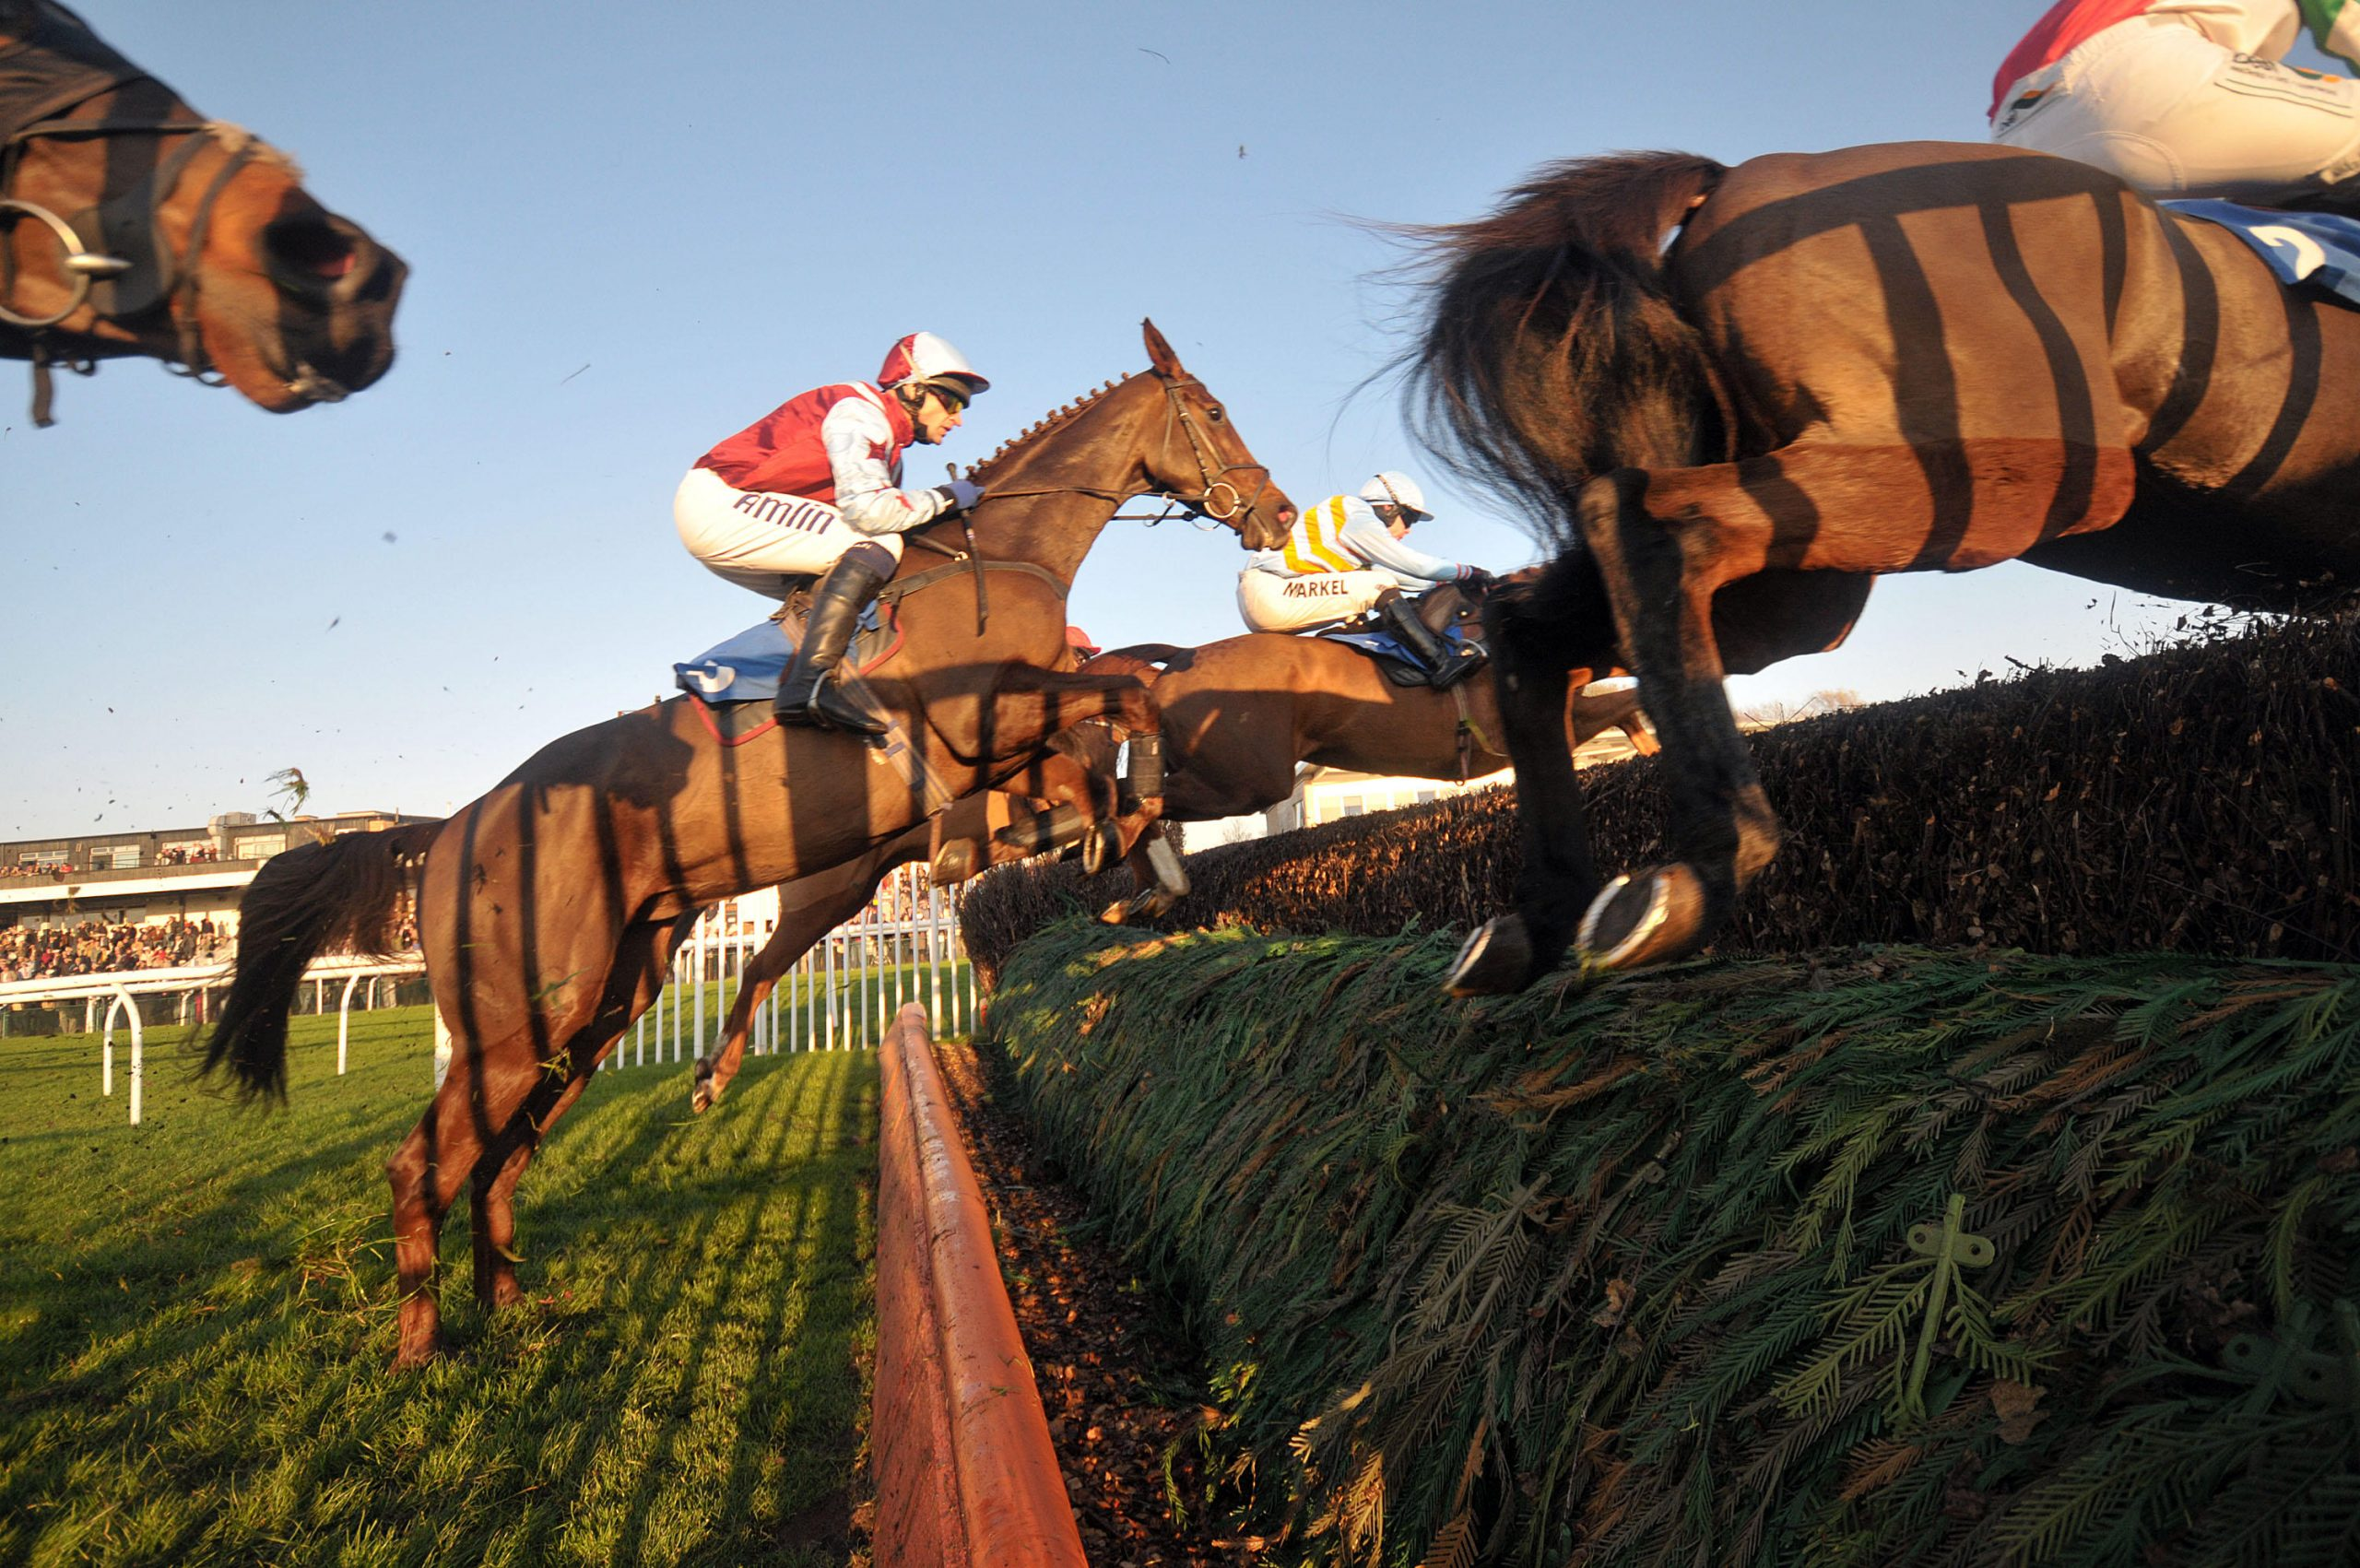 Horses take the open ditch in front of the stands in the toteswinger Handicap Chase at Huntingdon Racecourse, Brampton, Cambridgeshire - 19/11/2011 - CREDIT: Martin Dalton/TGSPHOTO